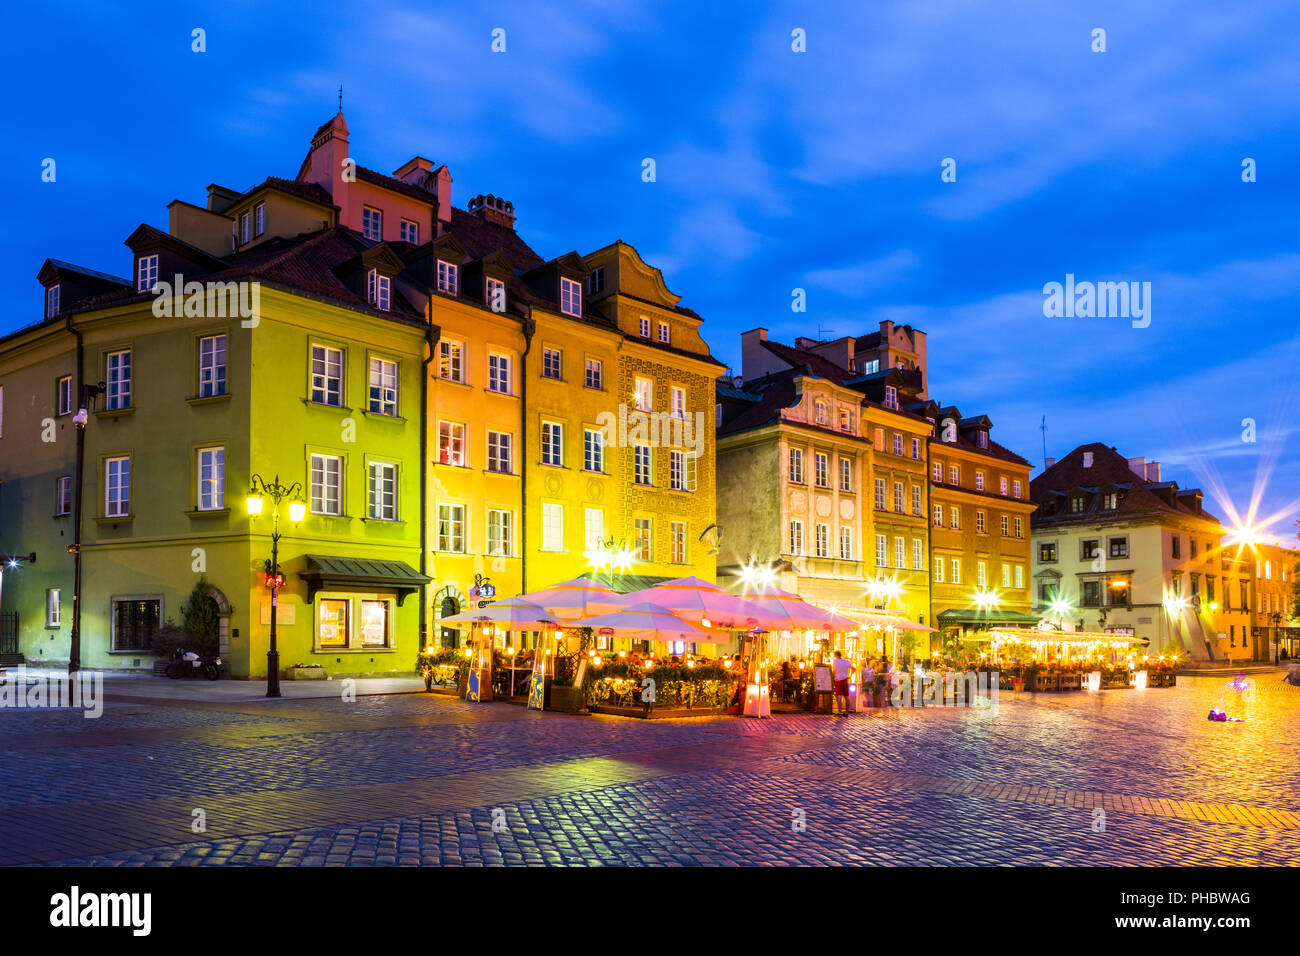 Buildings in Plac Zamkowy (Castle Square) at night, Old Town, UNESCO World Heritage Site, Warsaw, Poland, Europe - Stock Image